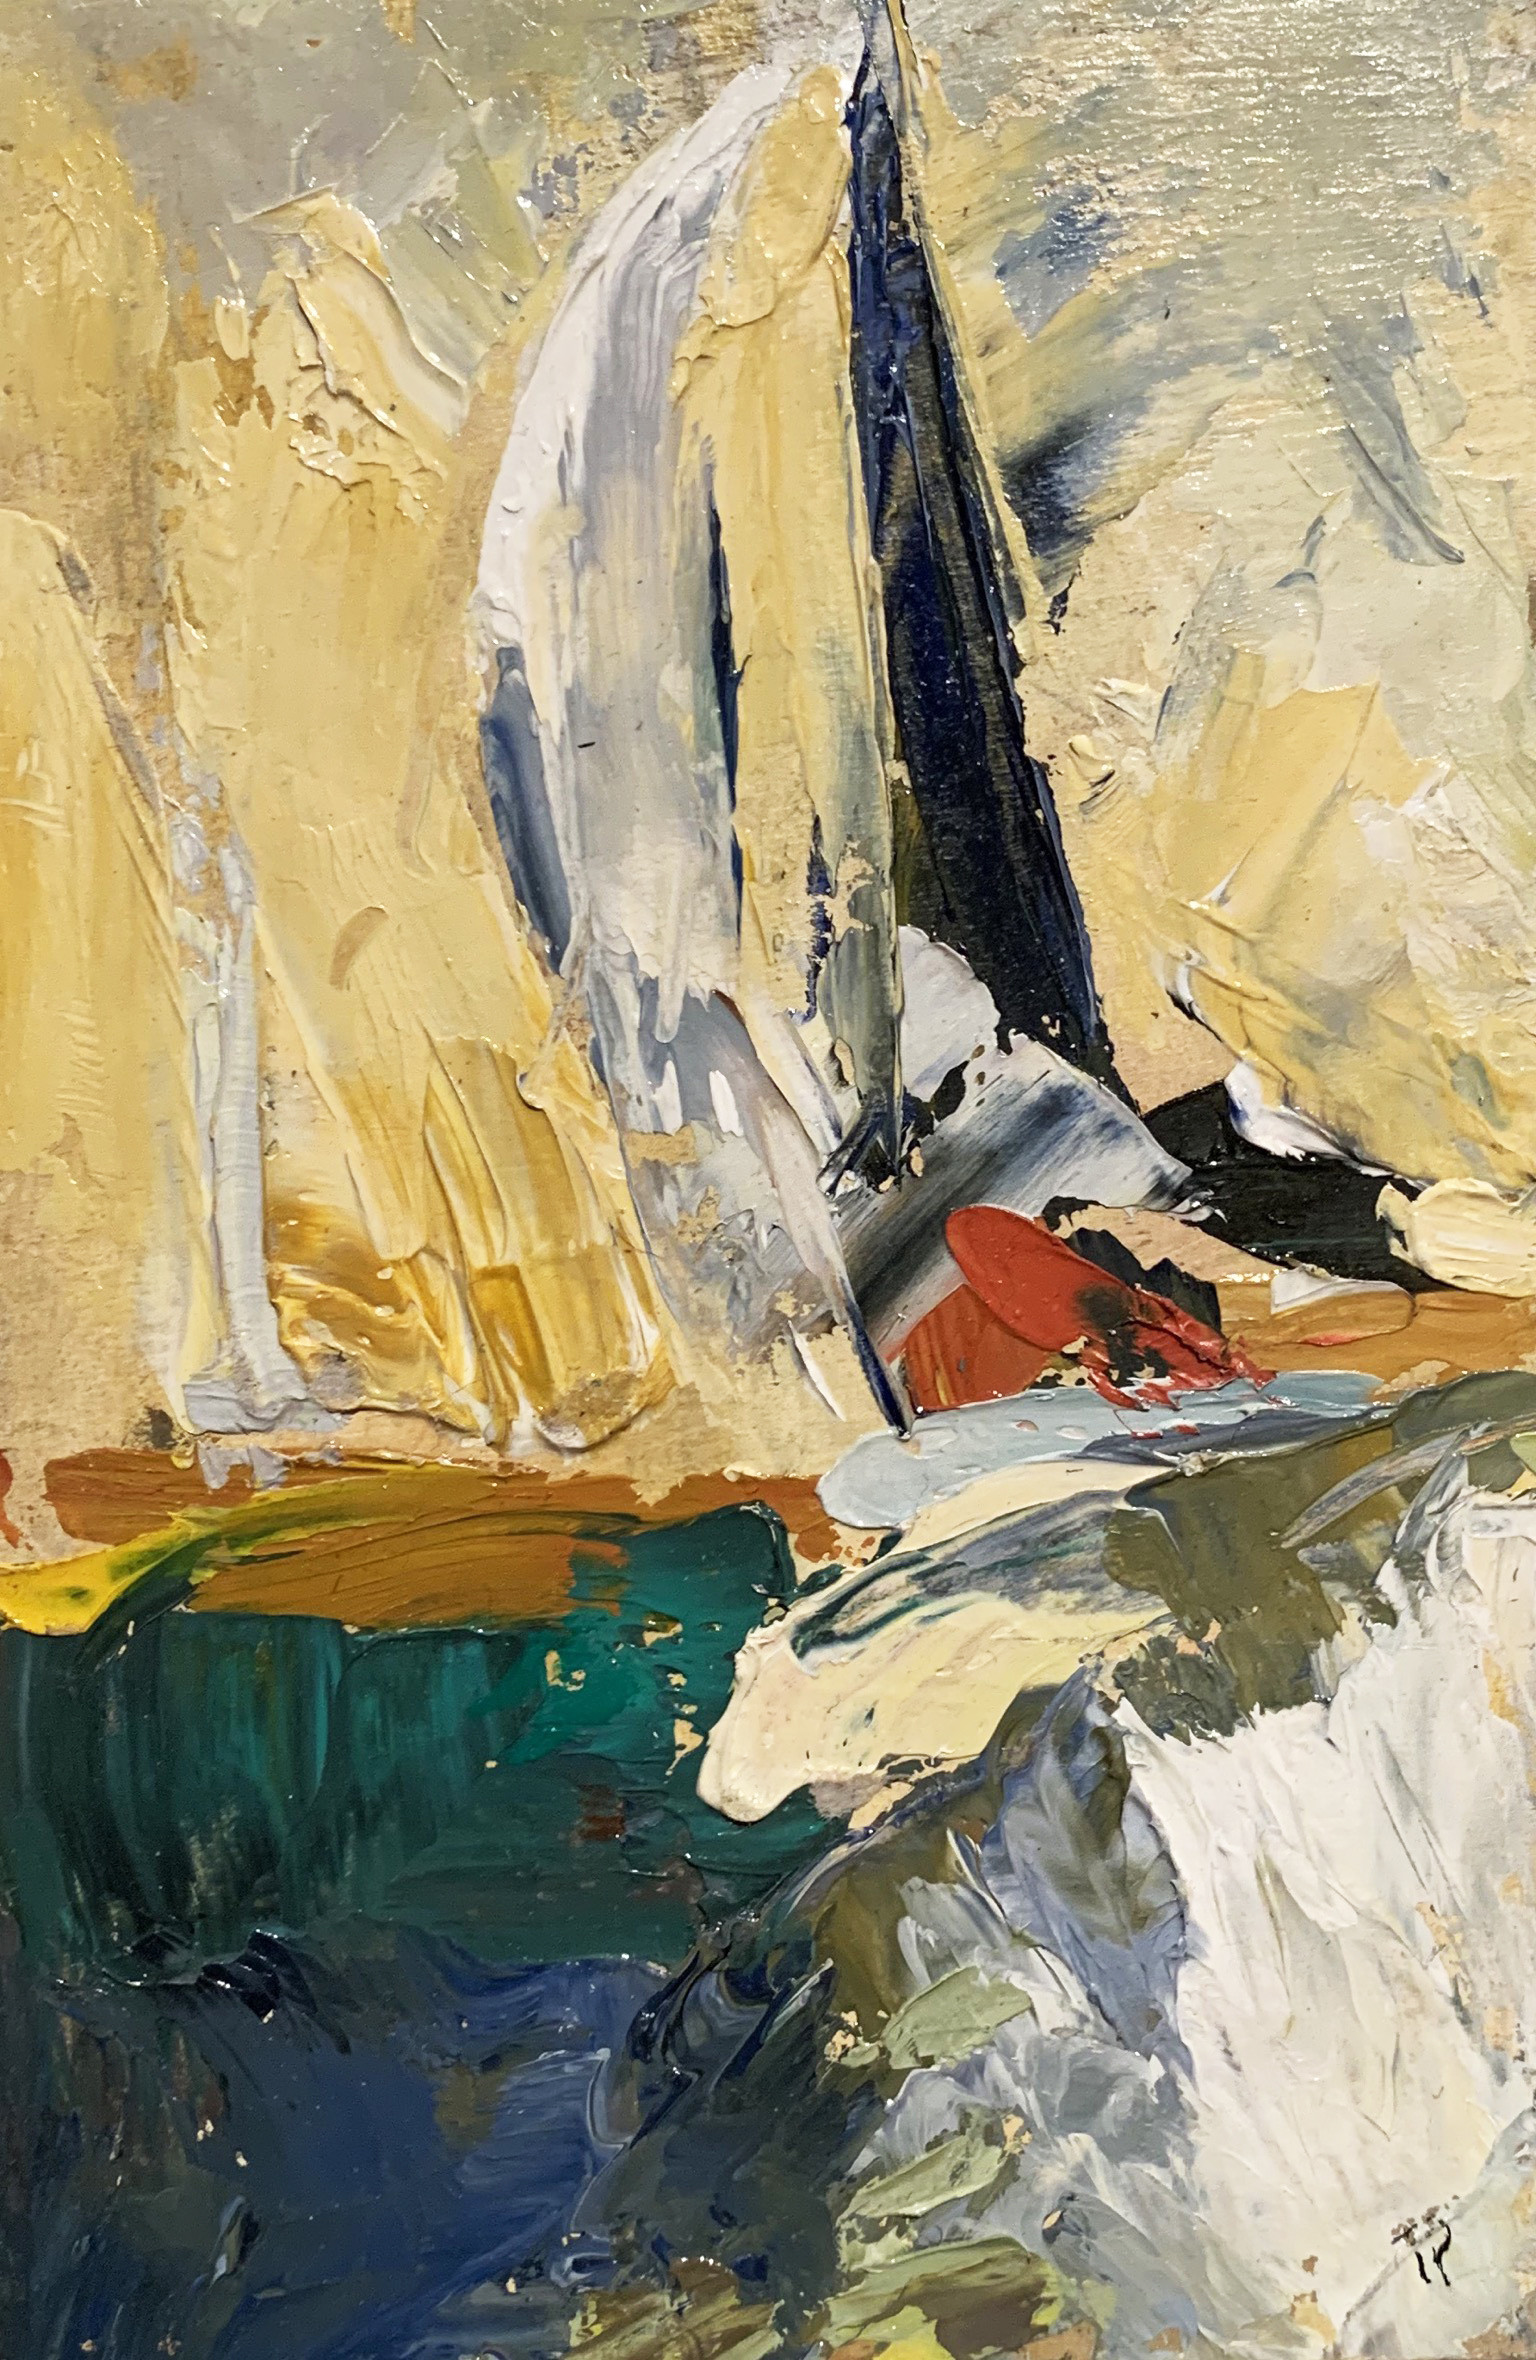 "<span class=""link fancybox-details-link""><a href=""/exhibitions/122/works/artworks3202/"">View Detail Page</a></span><div class=""artist""><strong>Tuëma Pattie</strong></div><div class=""title""><em>Yachts</em>, 2016</div><div class=""medium"">Oil on canvas</div><div class=""dimensions"">Framed:<br>28.5 x 22.5 cm<br>11 1/4 x 8 7/8 in.<br><br>Unframed:<br>19 x 12.5 cm<br>7 1/2 x 4 7/8 in.</div>"